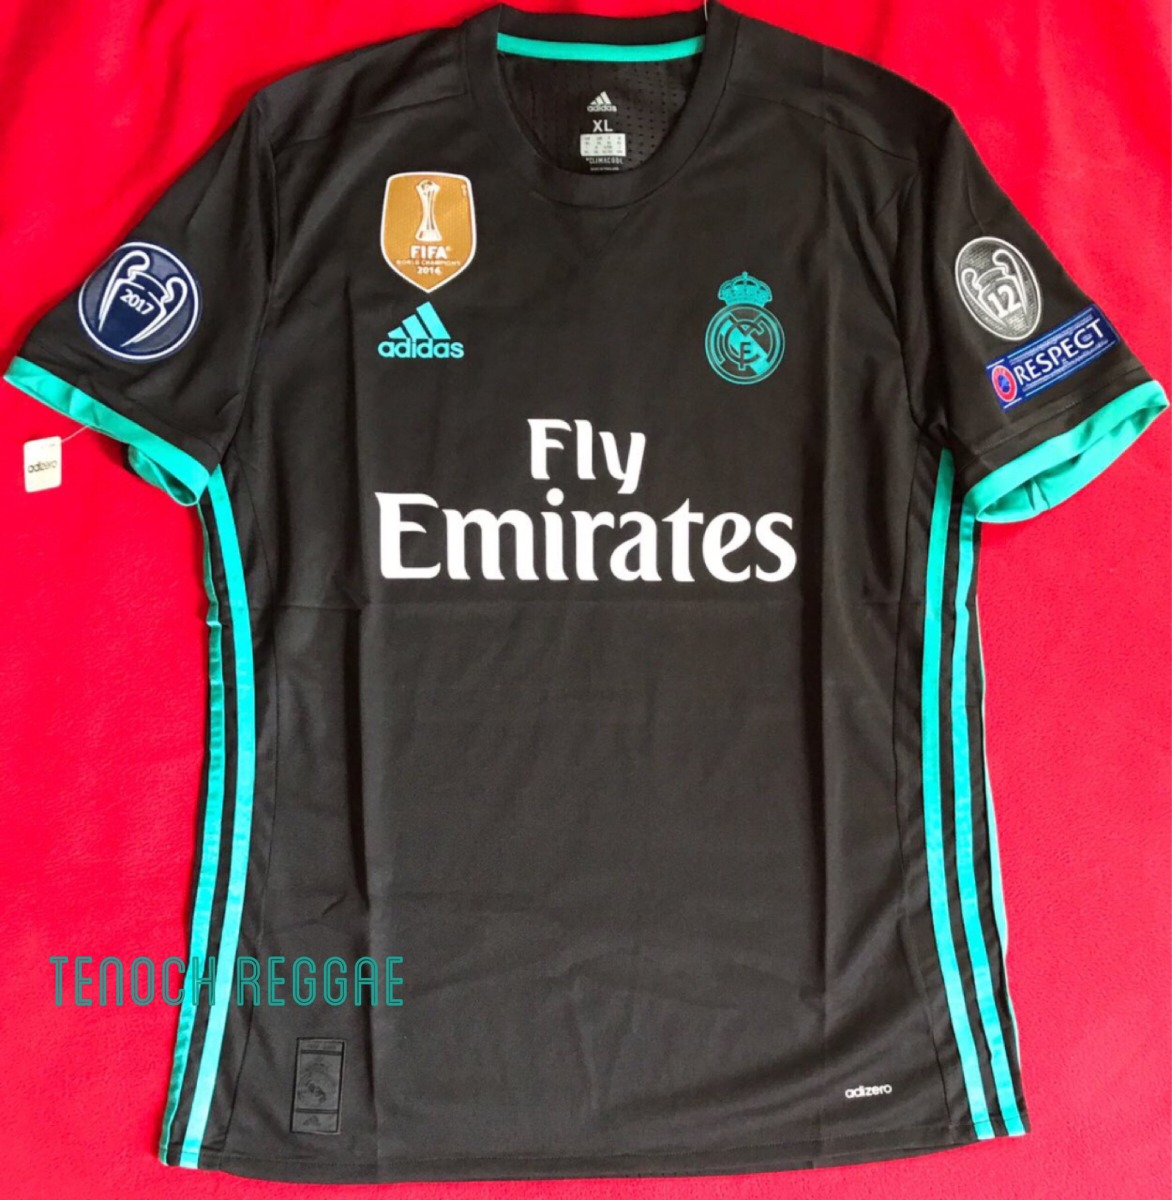 733e8c5114940 Jersey Playera Real Madrid 2017-2018 Champions League -   799.00 en ...